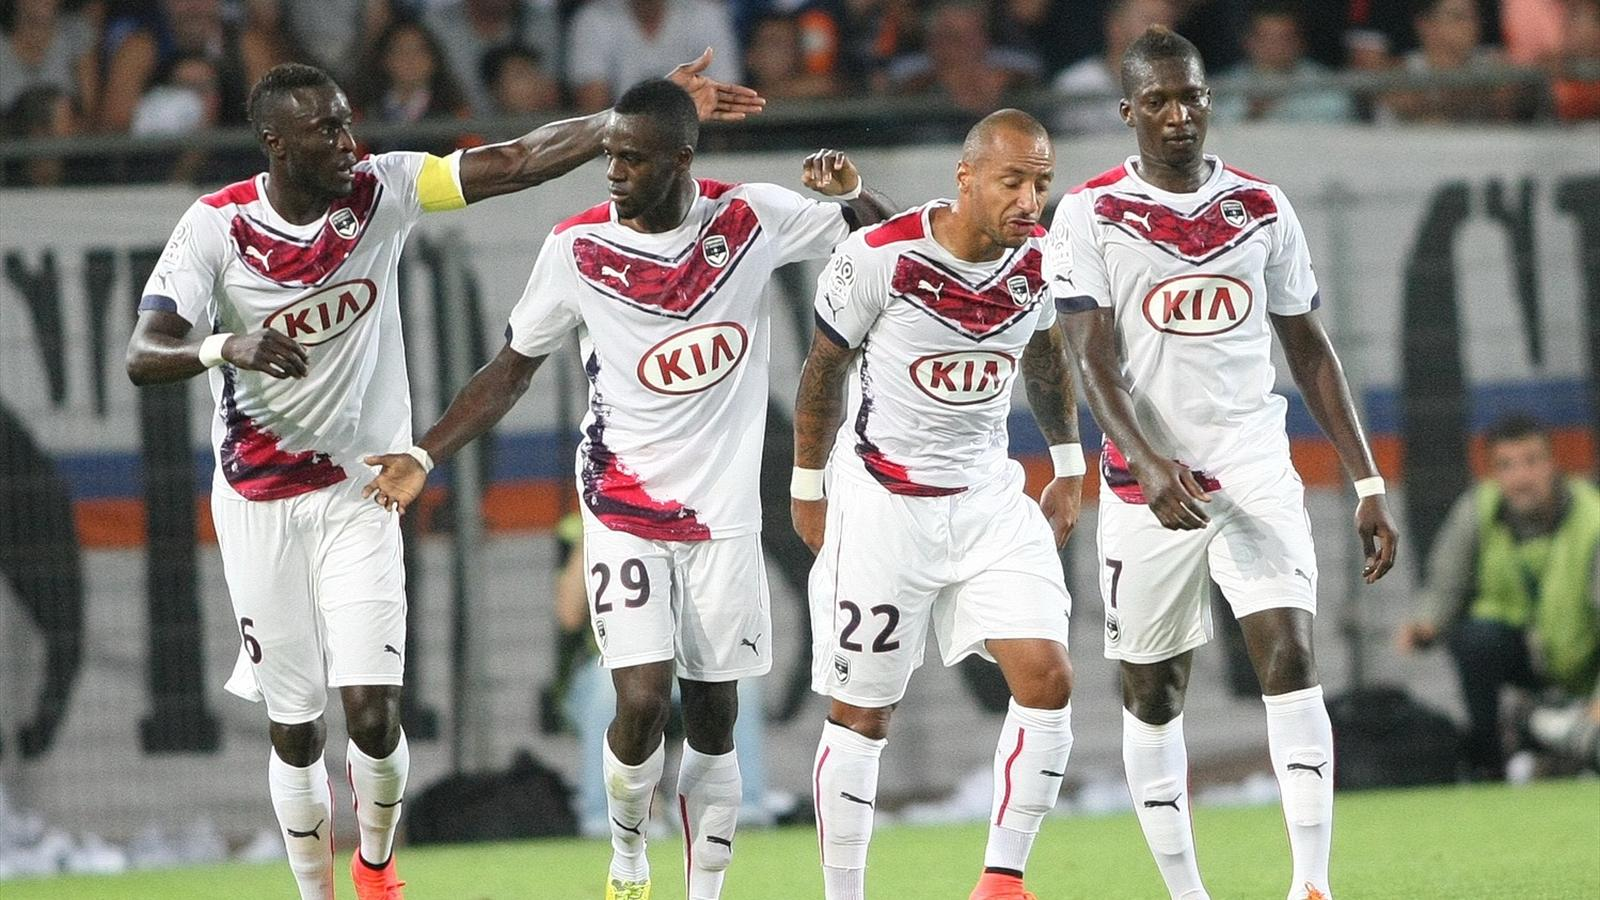 Match Reims vs Bordeaux en direct live streaming